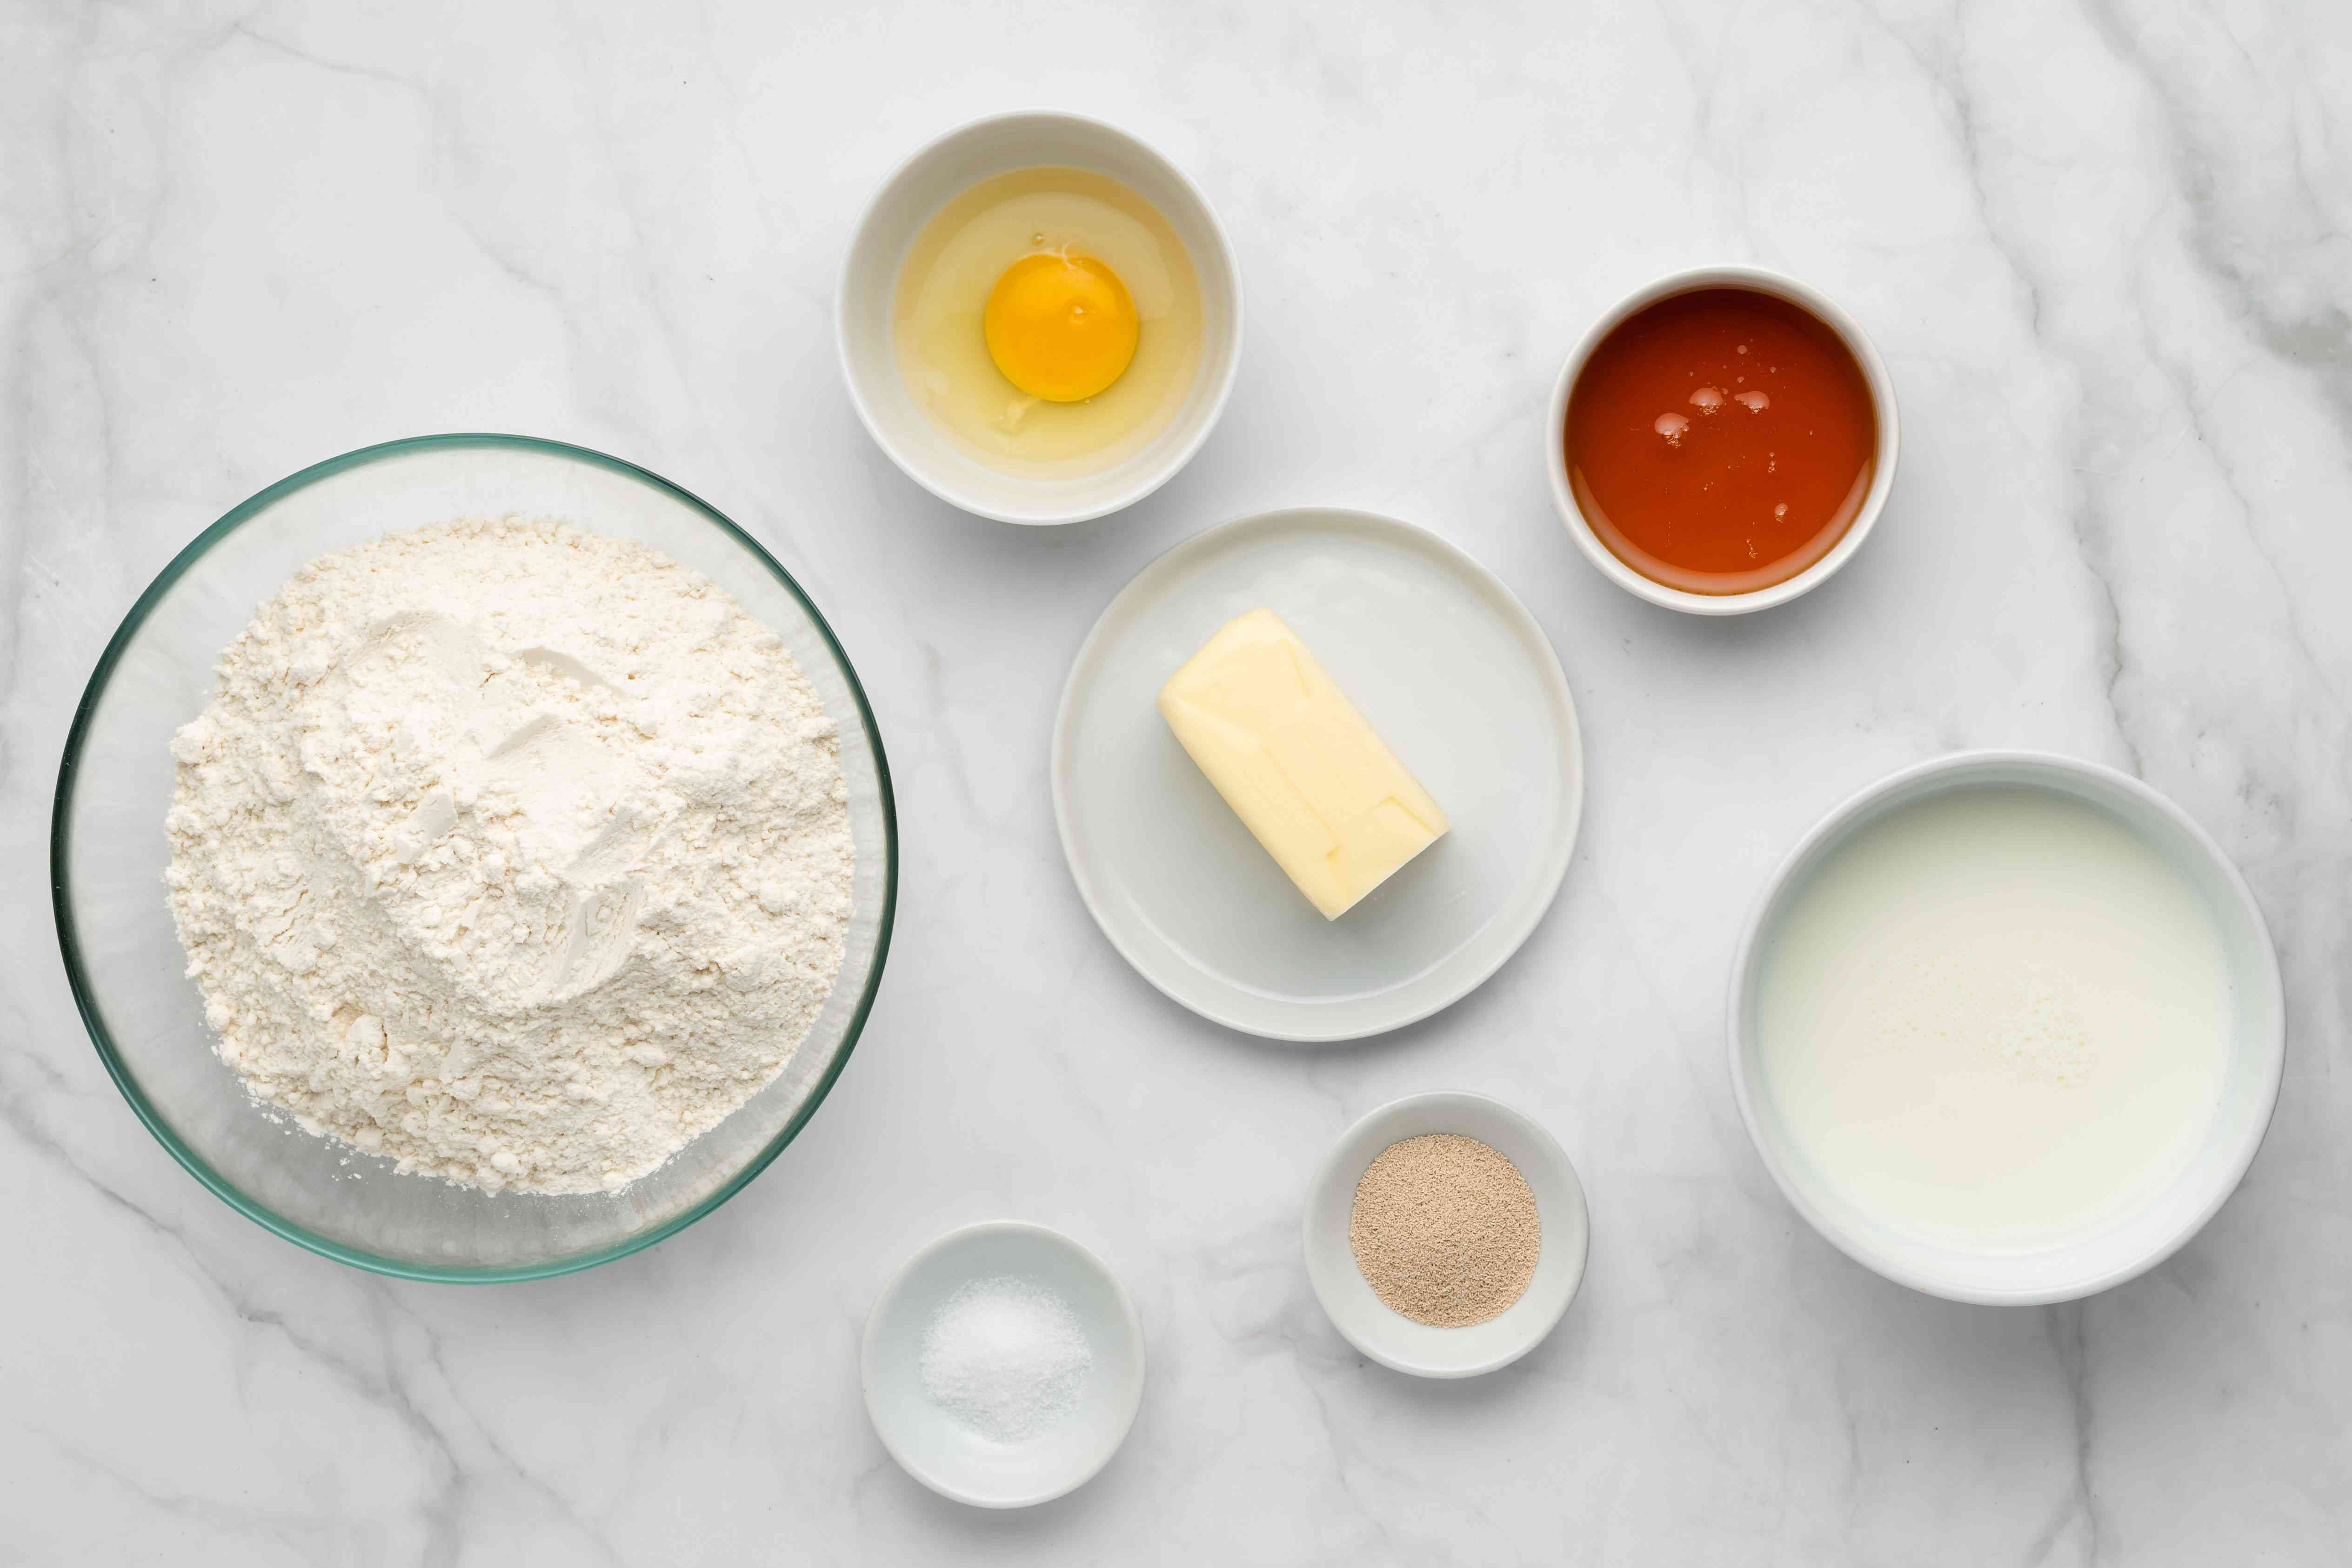 Cake dough ingredients for bee sting cake